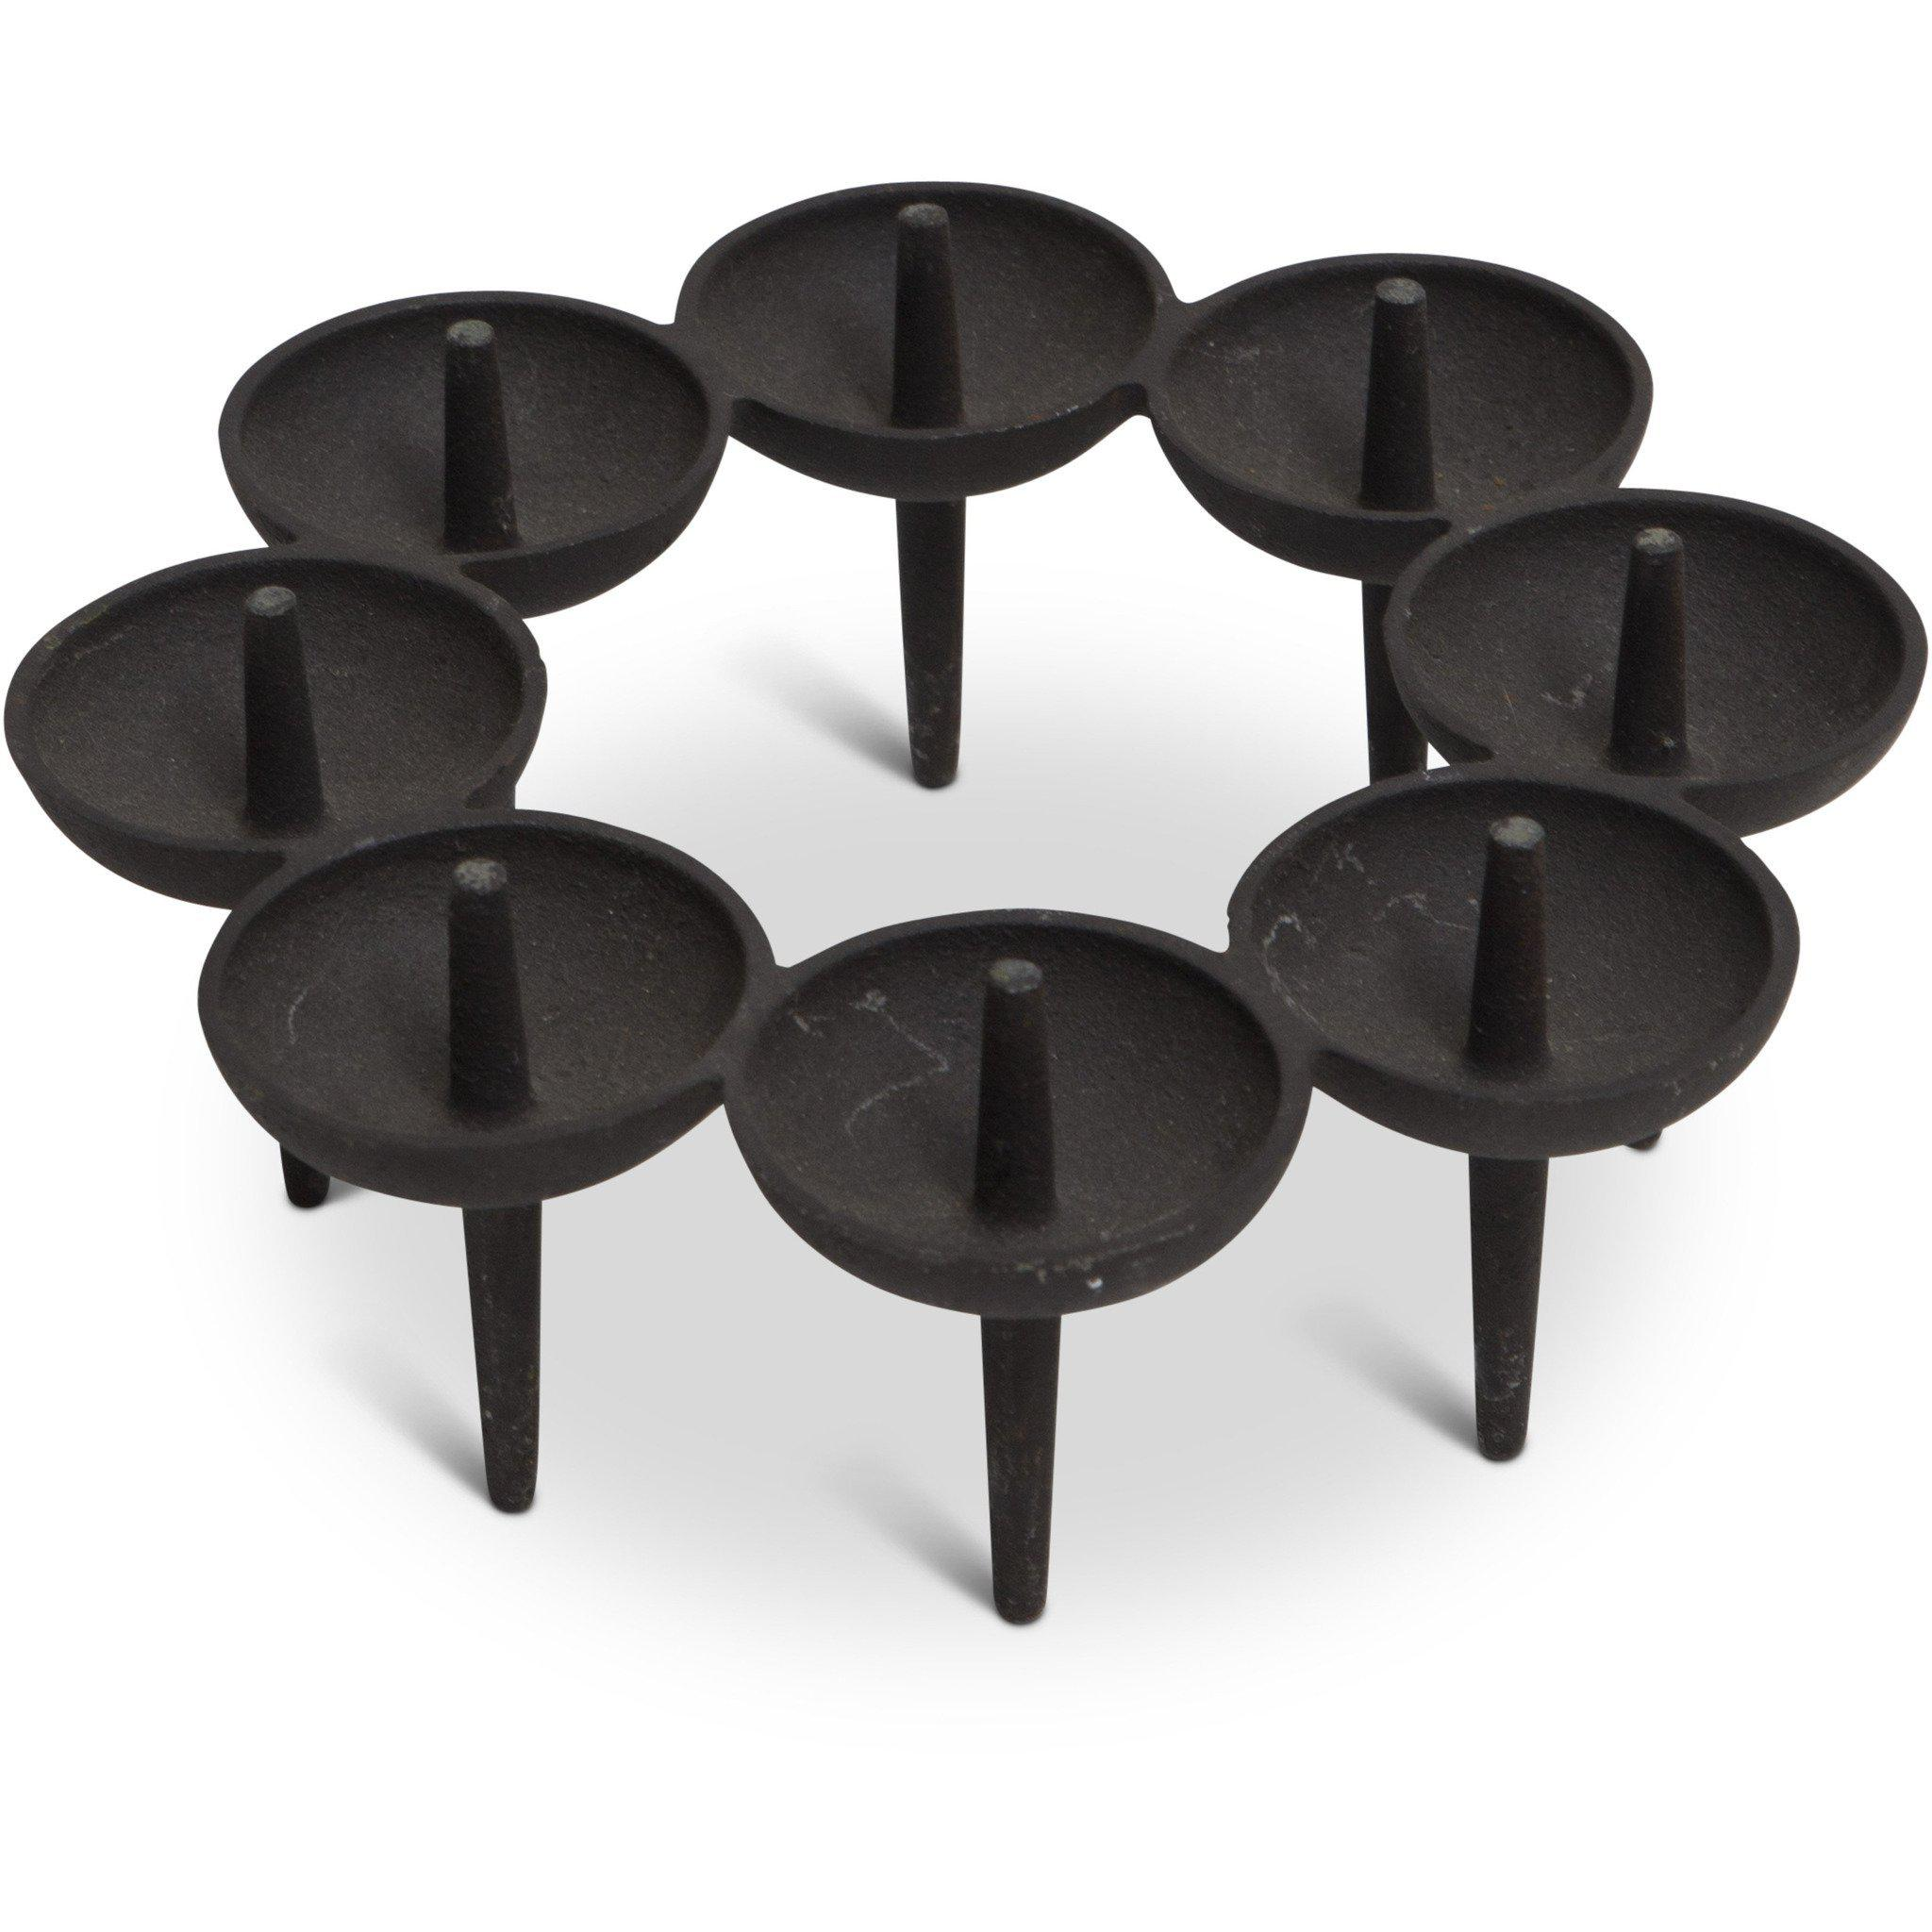 "Börge Rojalin for Dansk Cast Iron Candle Holder - ""Circlet"""